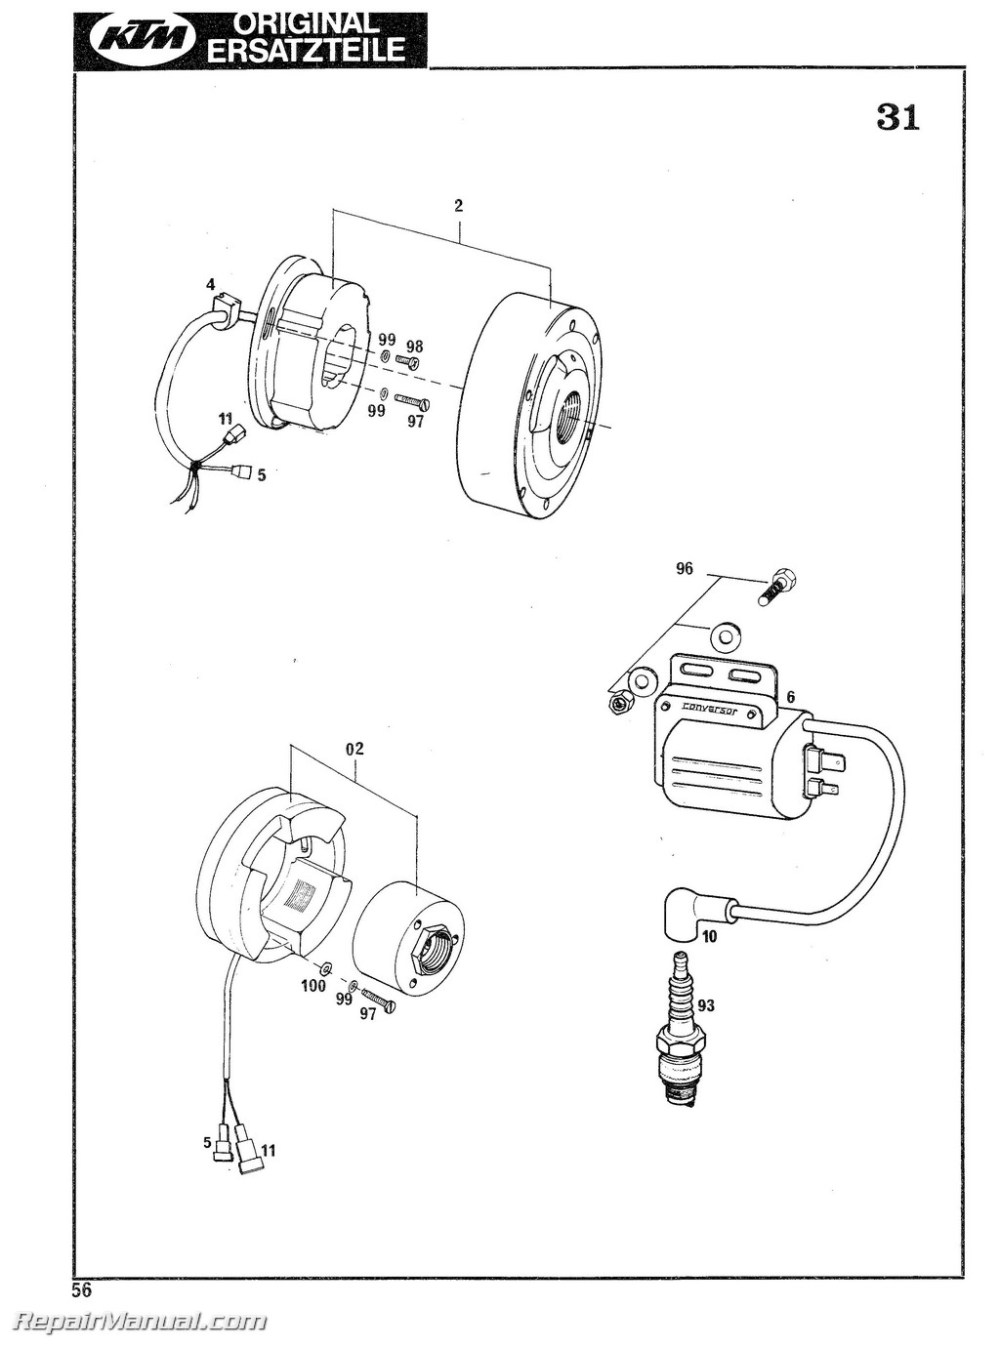 medium resolution of 1978 1979 ktm 125 175 240 250 340 400 motorcycle engine spare parts manual